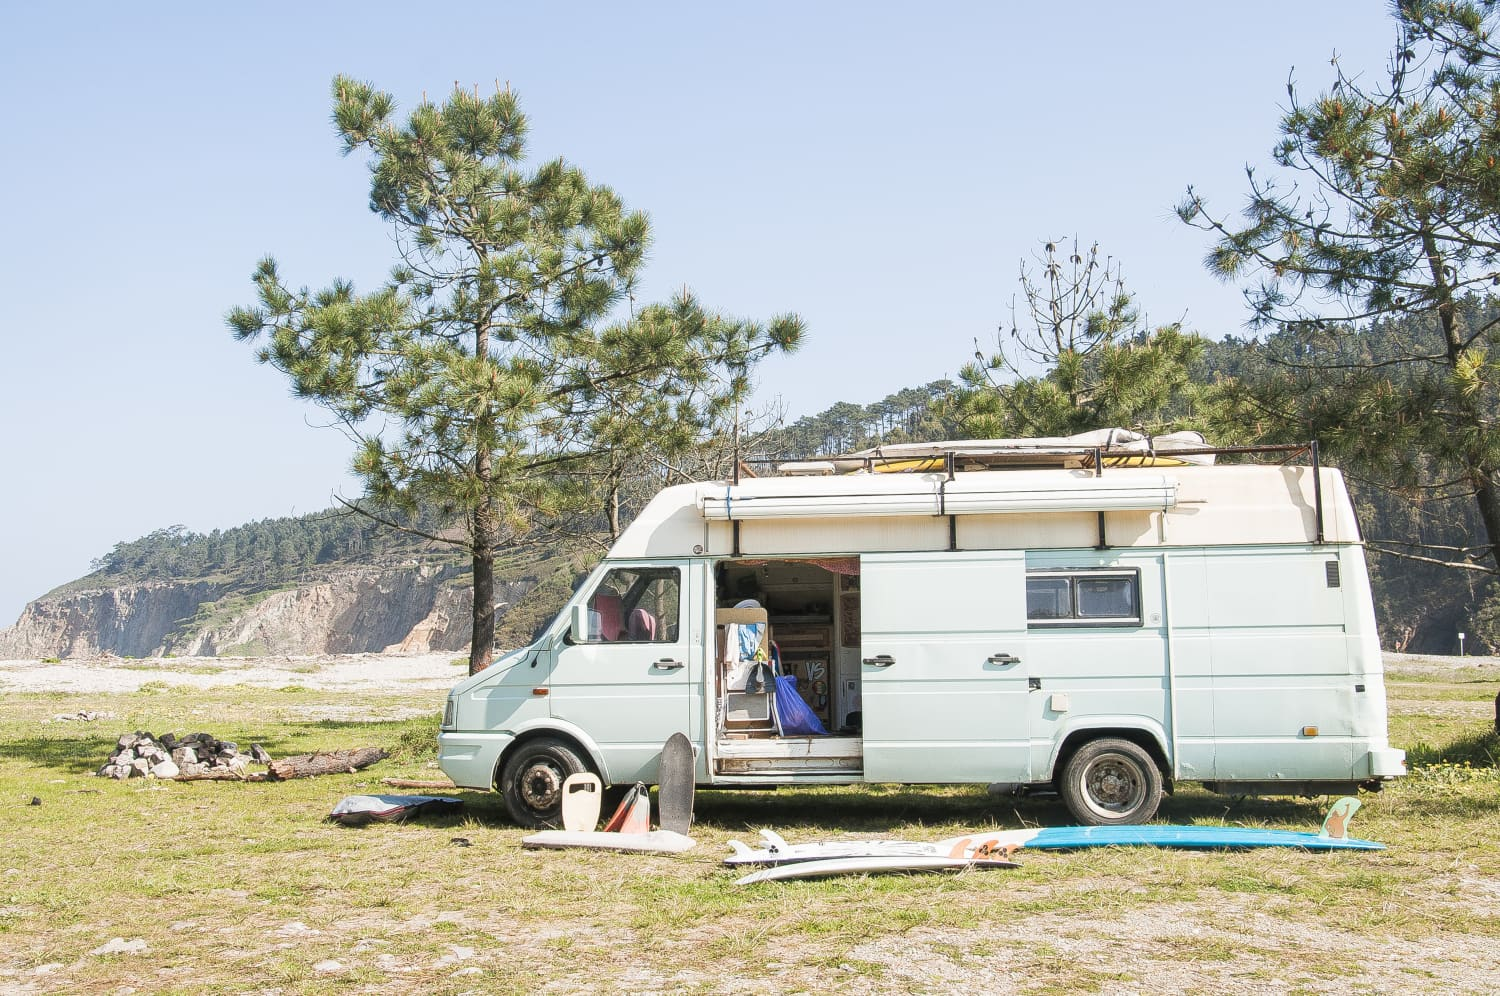 9 Camper Van Instagrams That Will Make You Want to Hit the Road Permanently